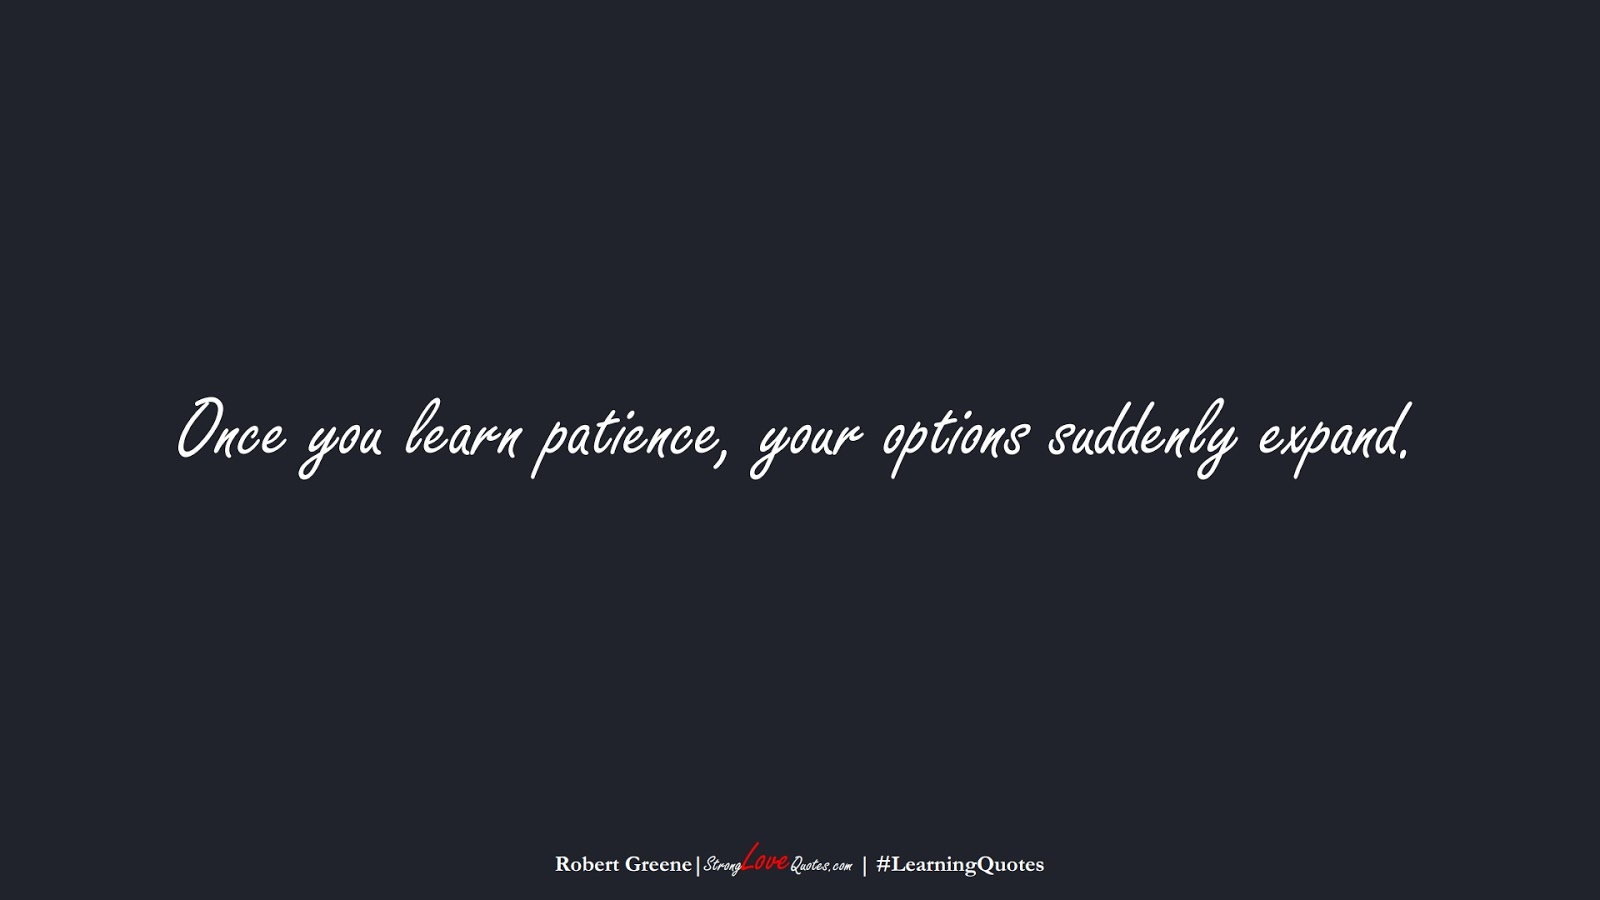 Once you learn patience, your options suddenly expand. (Robert Greene);  #LearningQuotes